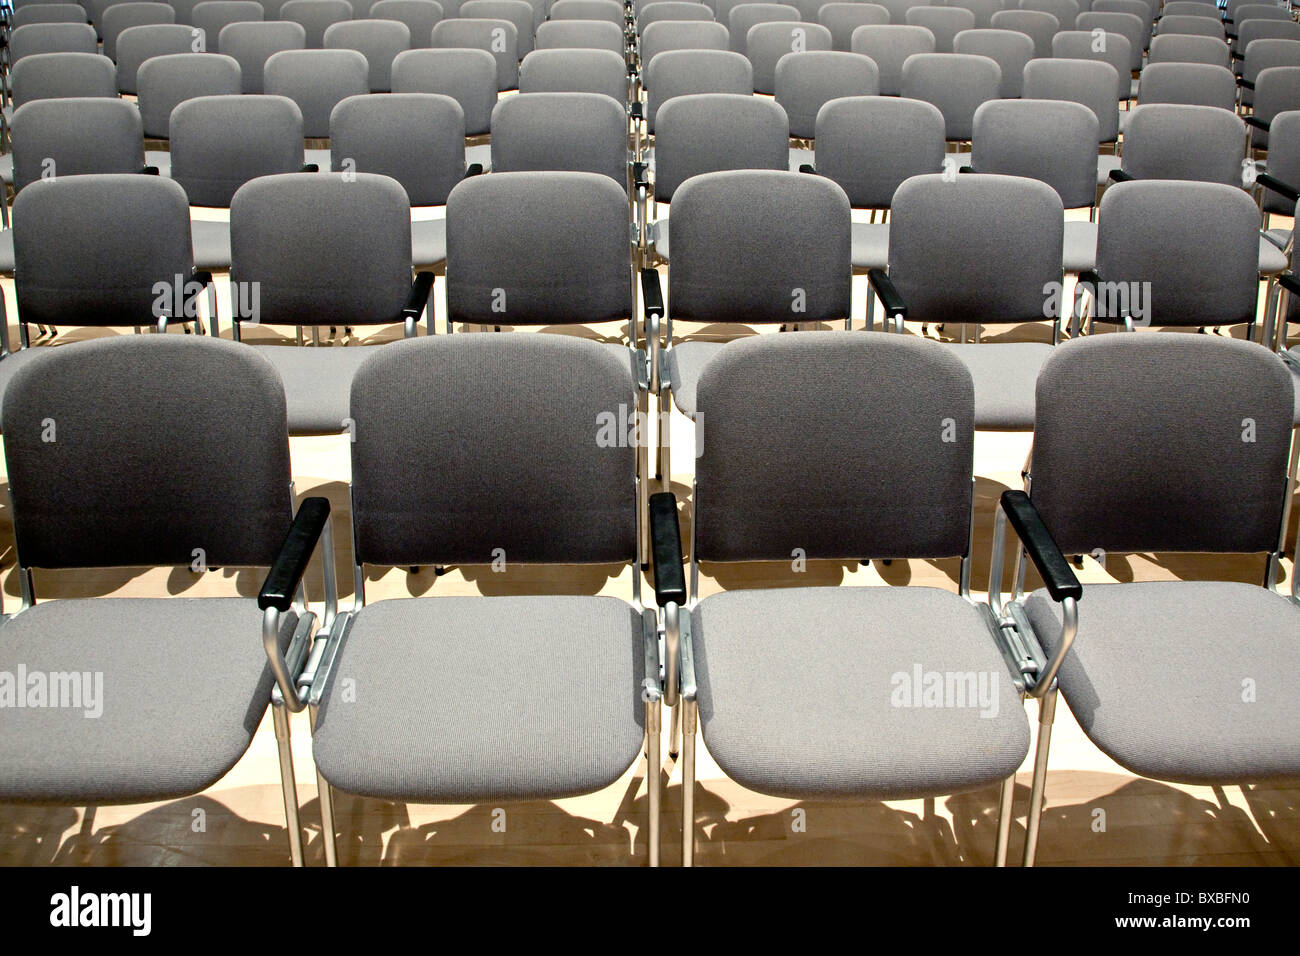 Rows of chairs - Stock Image